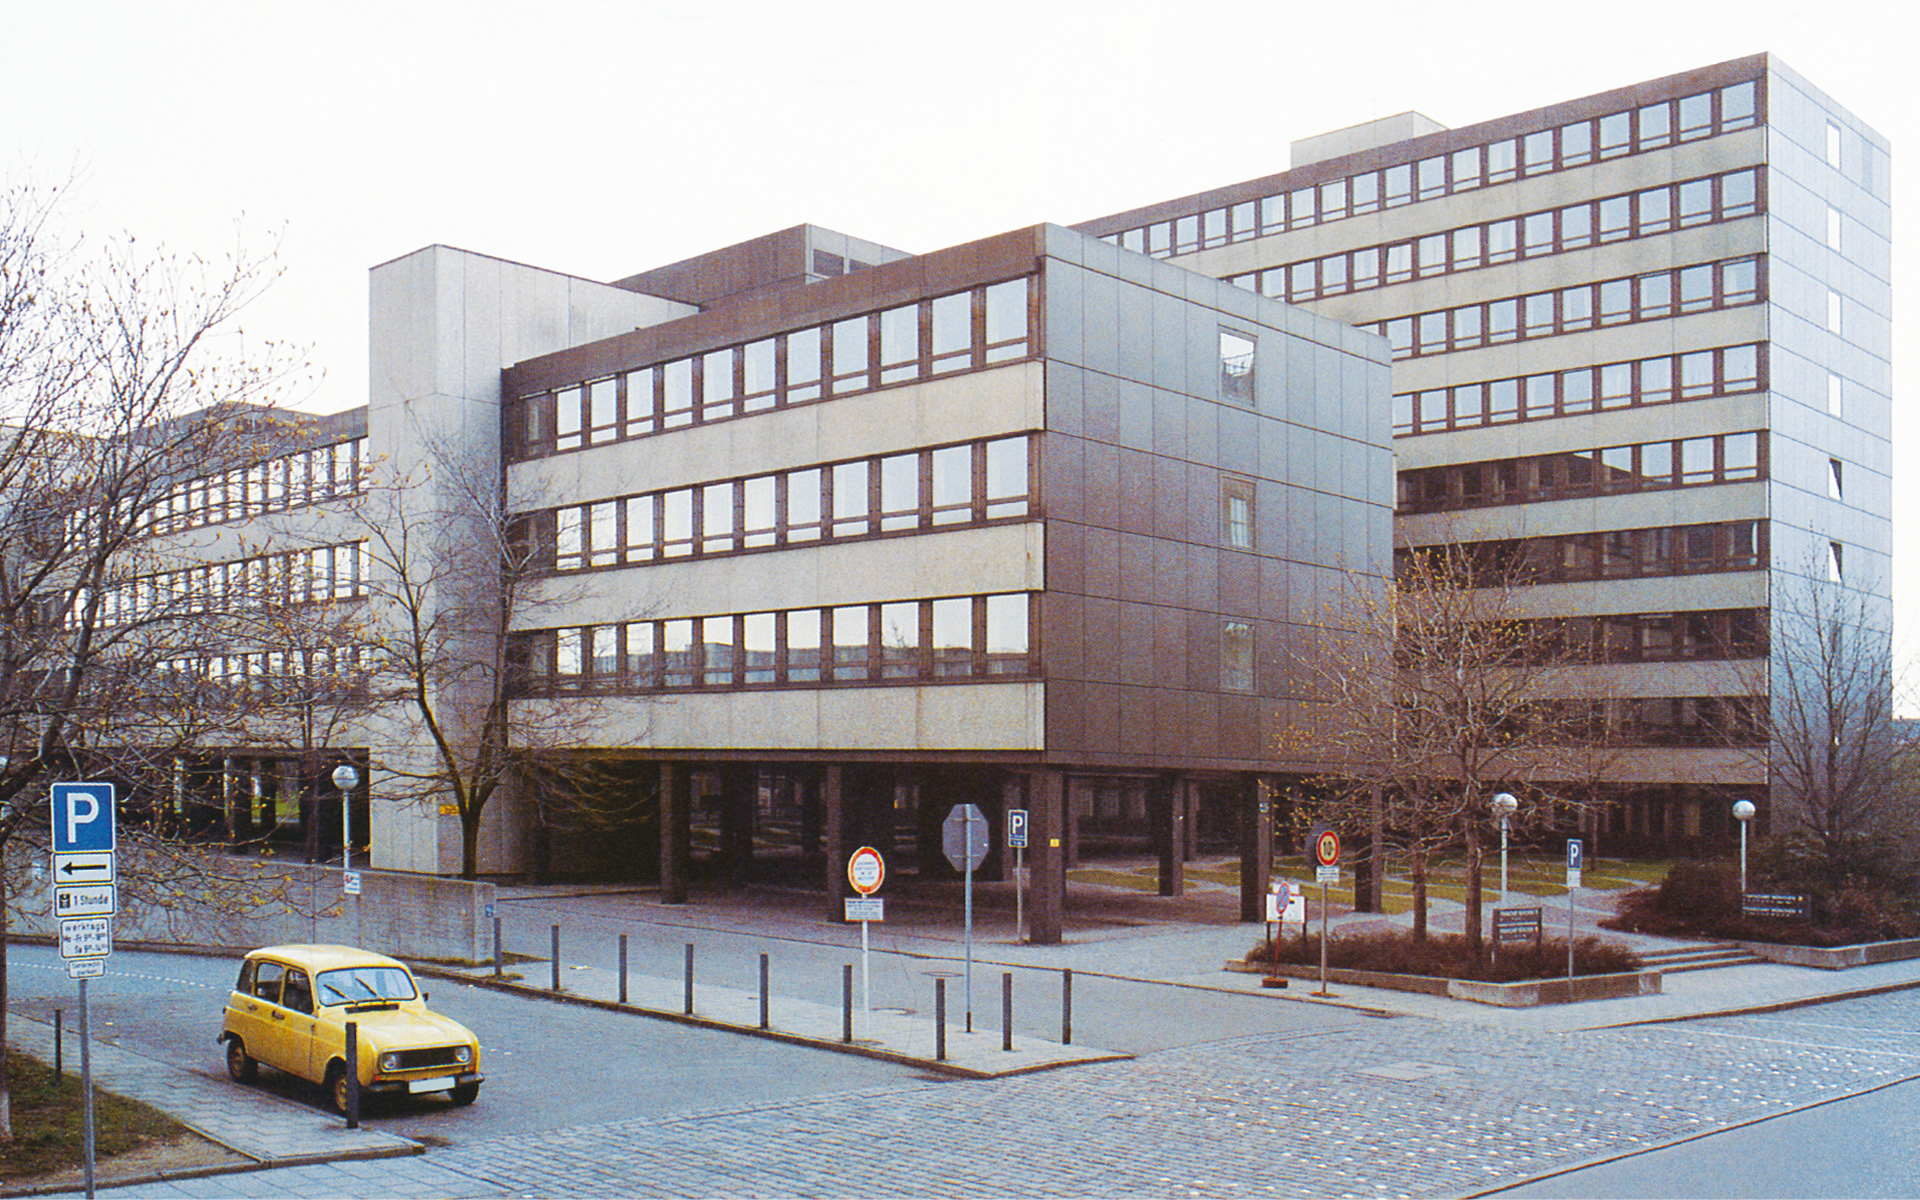 In 1975, the eight-story main building of the Munich Tax Office at Marsstraße was completed.